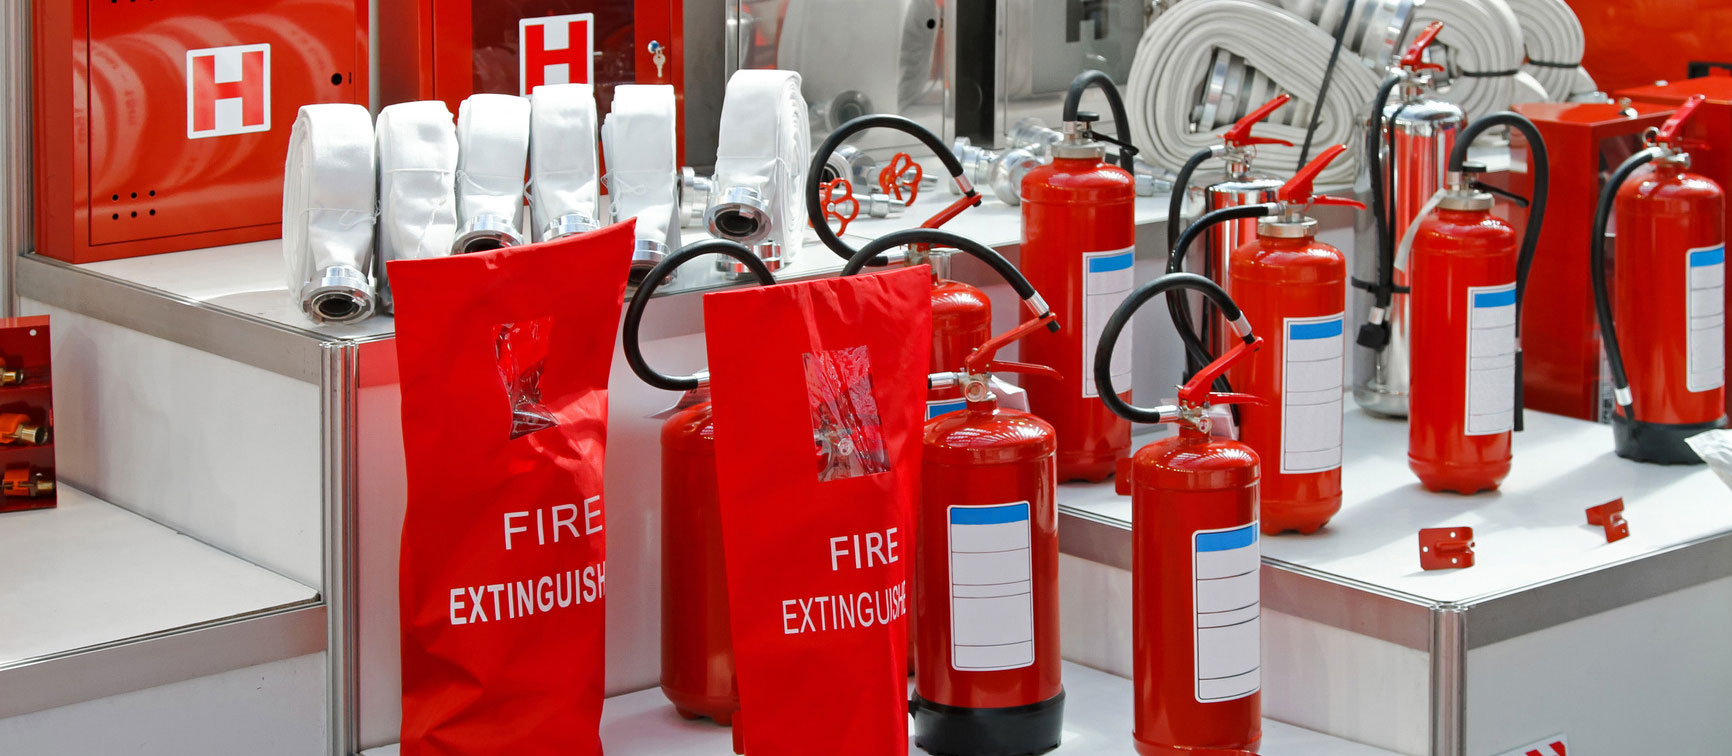 fire extinguishers - fire safety